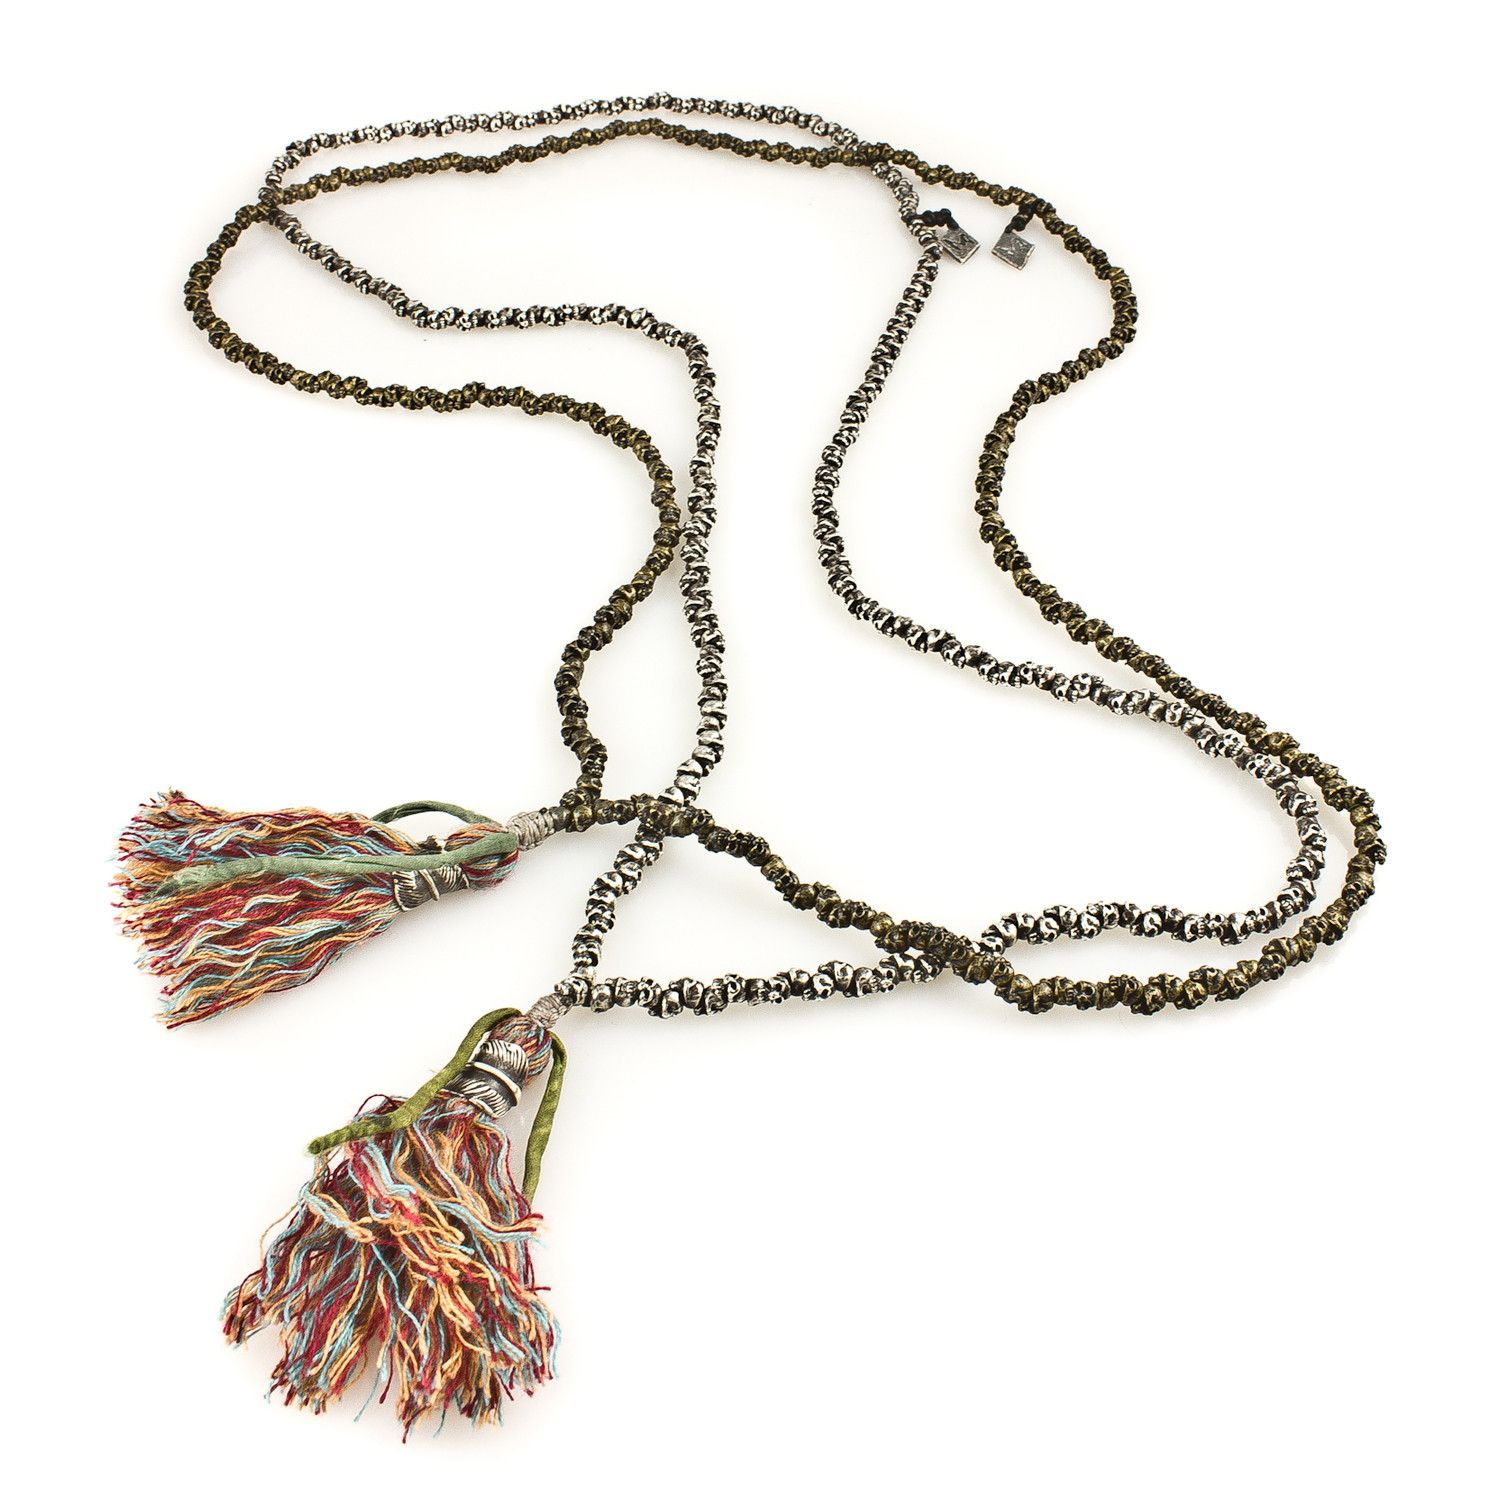 Stacked Skulls Tassel Necklace | M. Cohen Designs